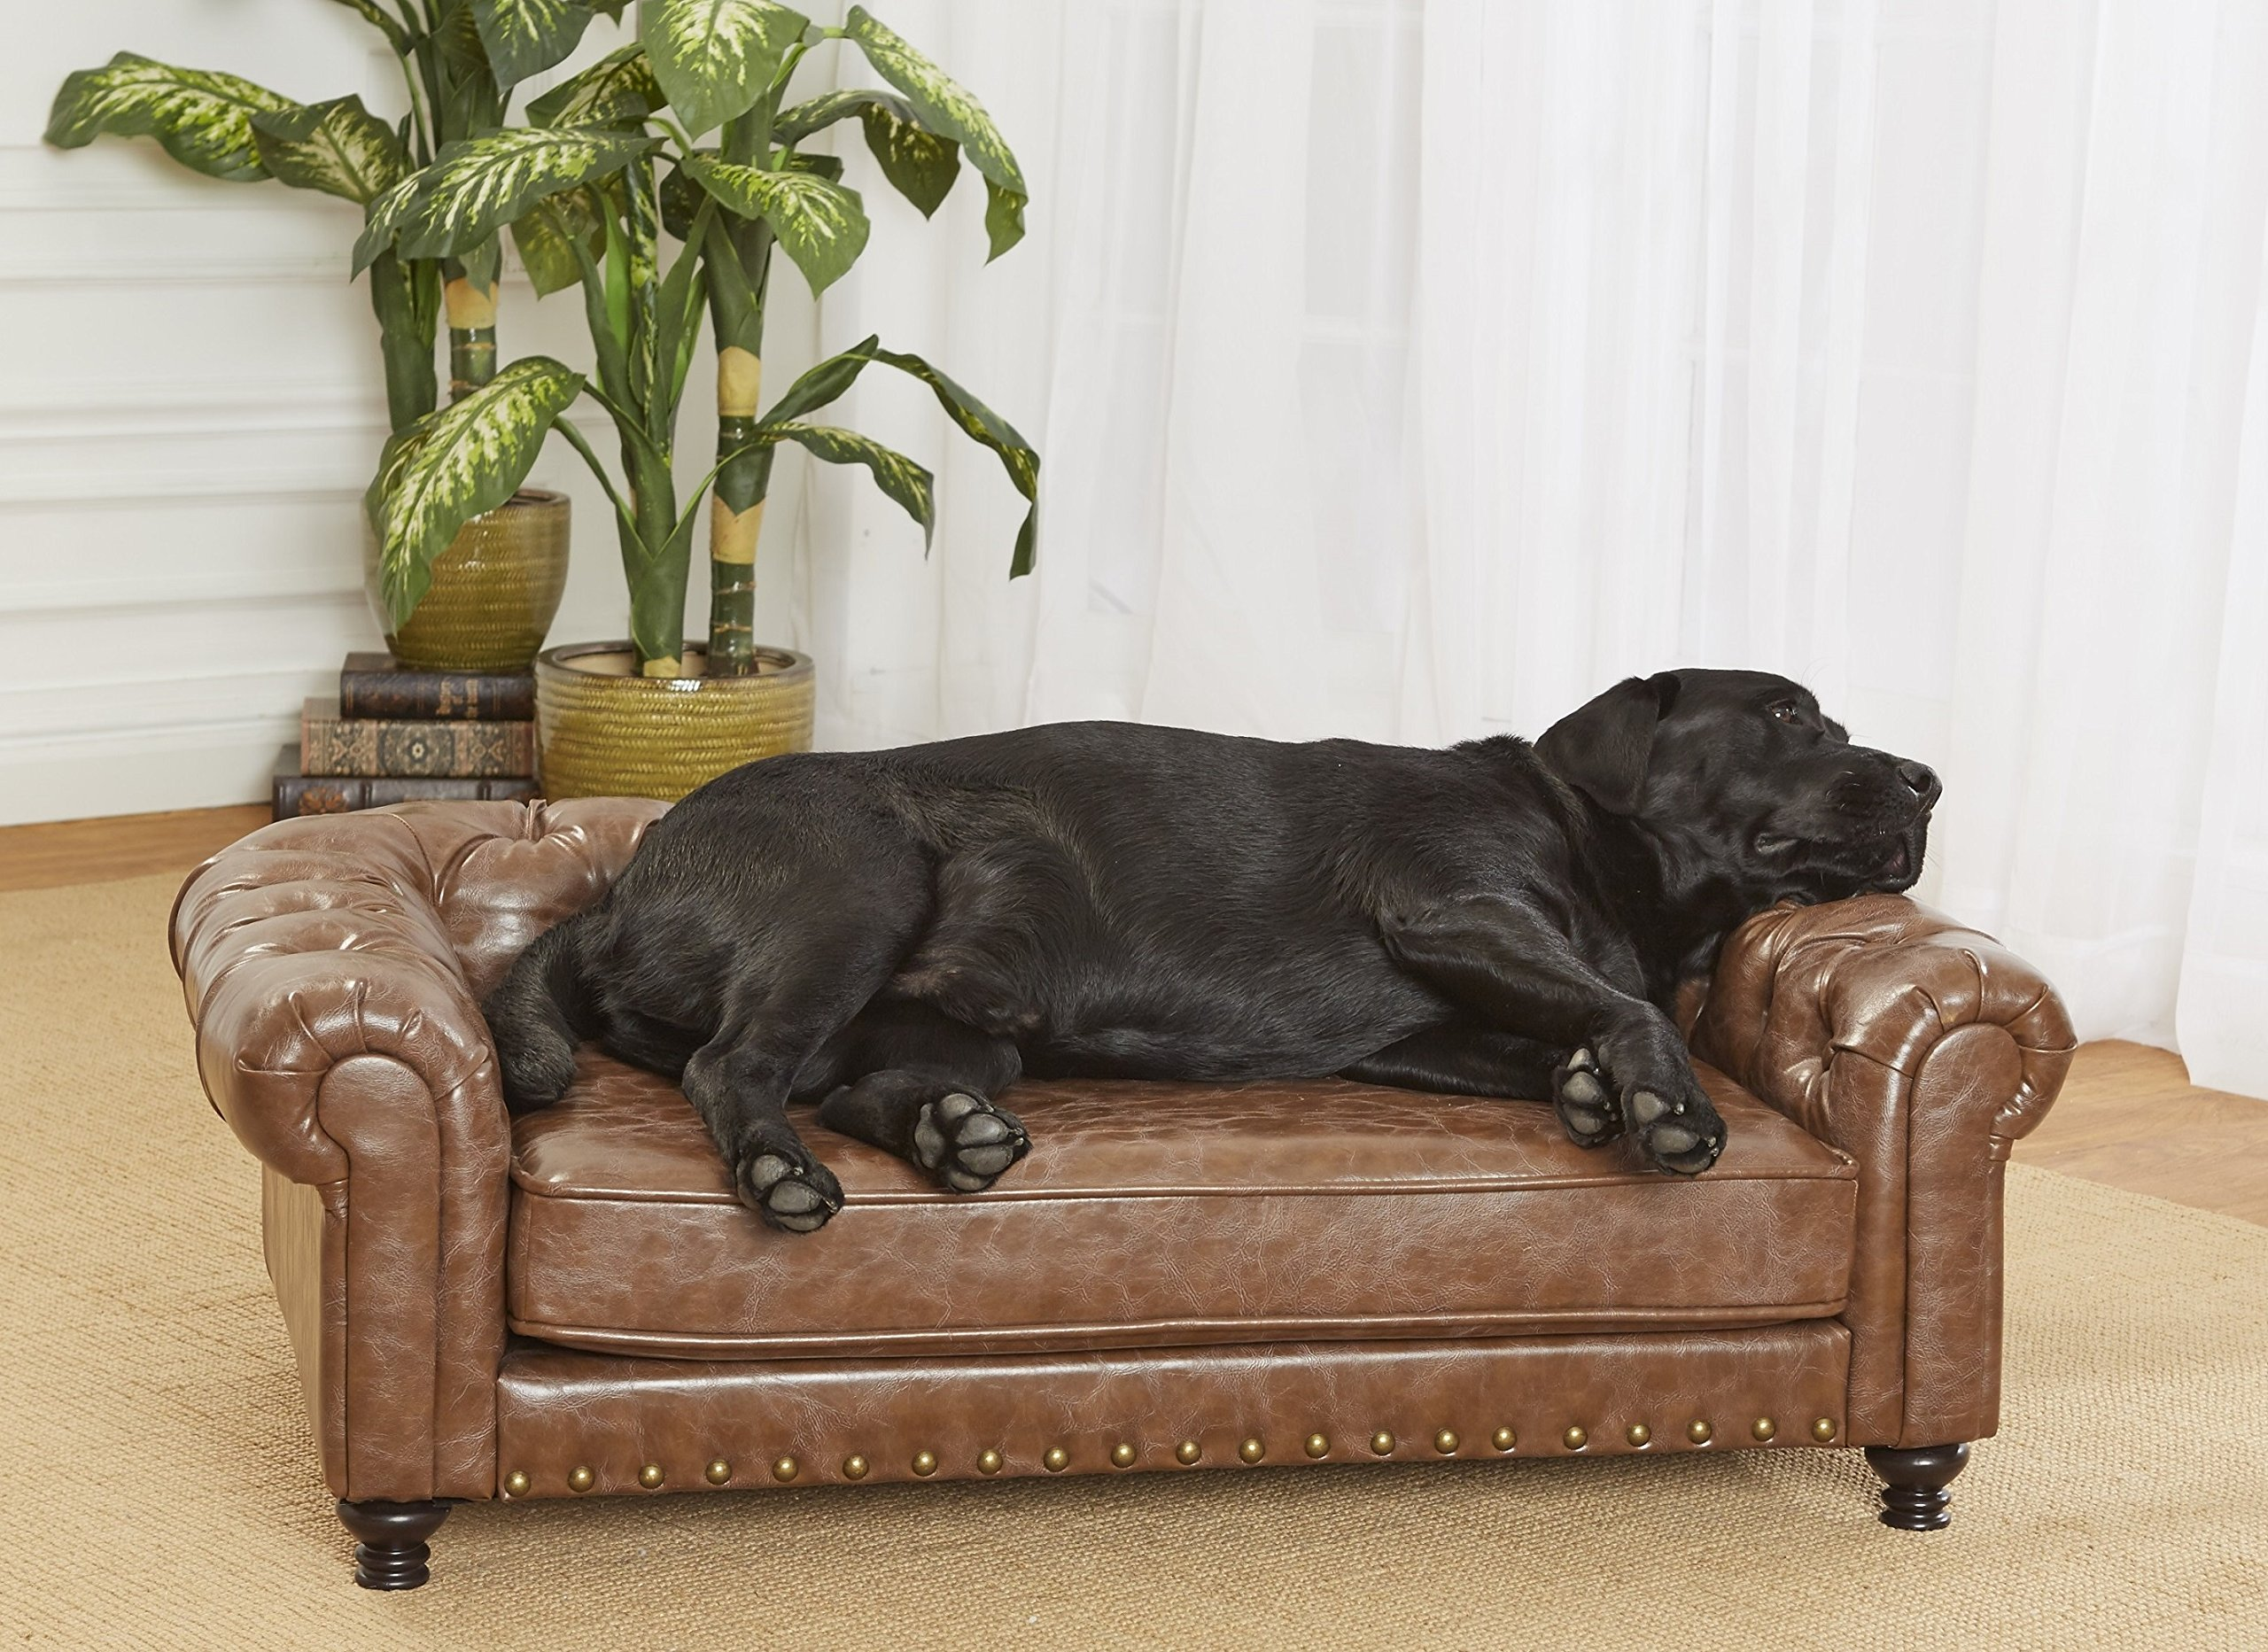 Enchanted Home Pet Wentworth Pet Sofa, Light Brown, Large